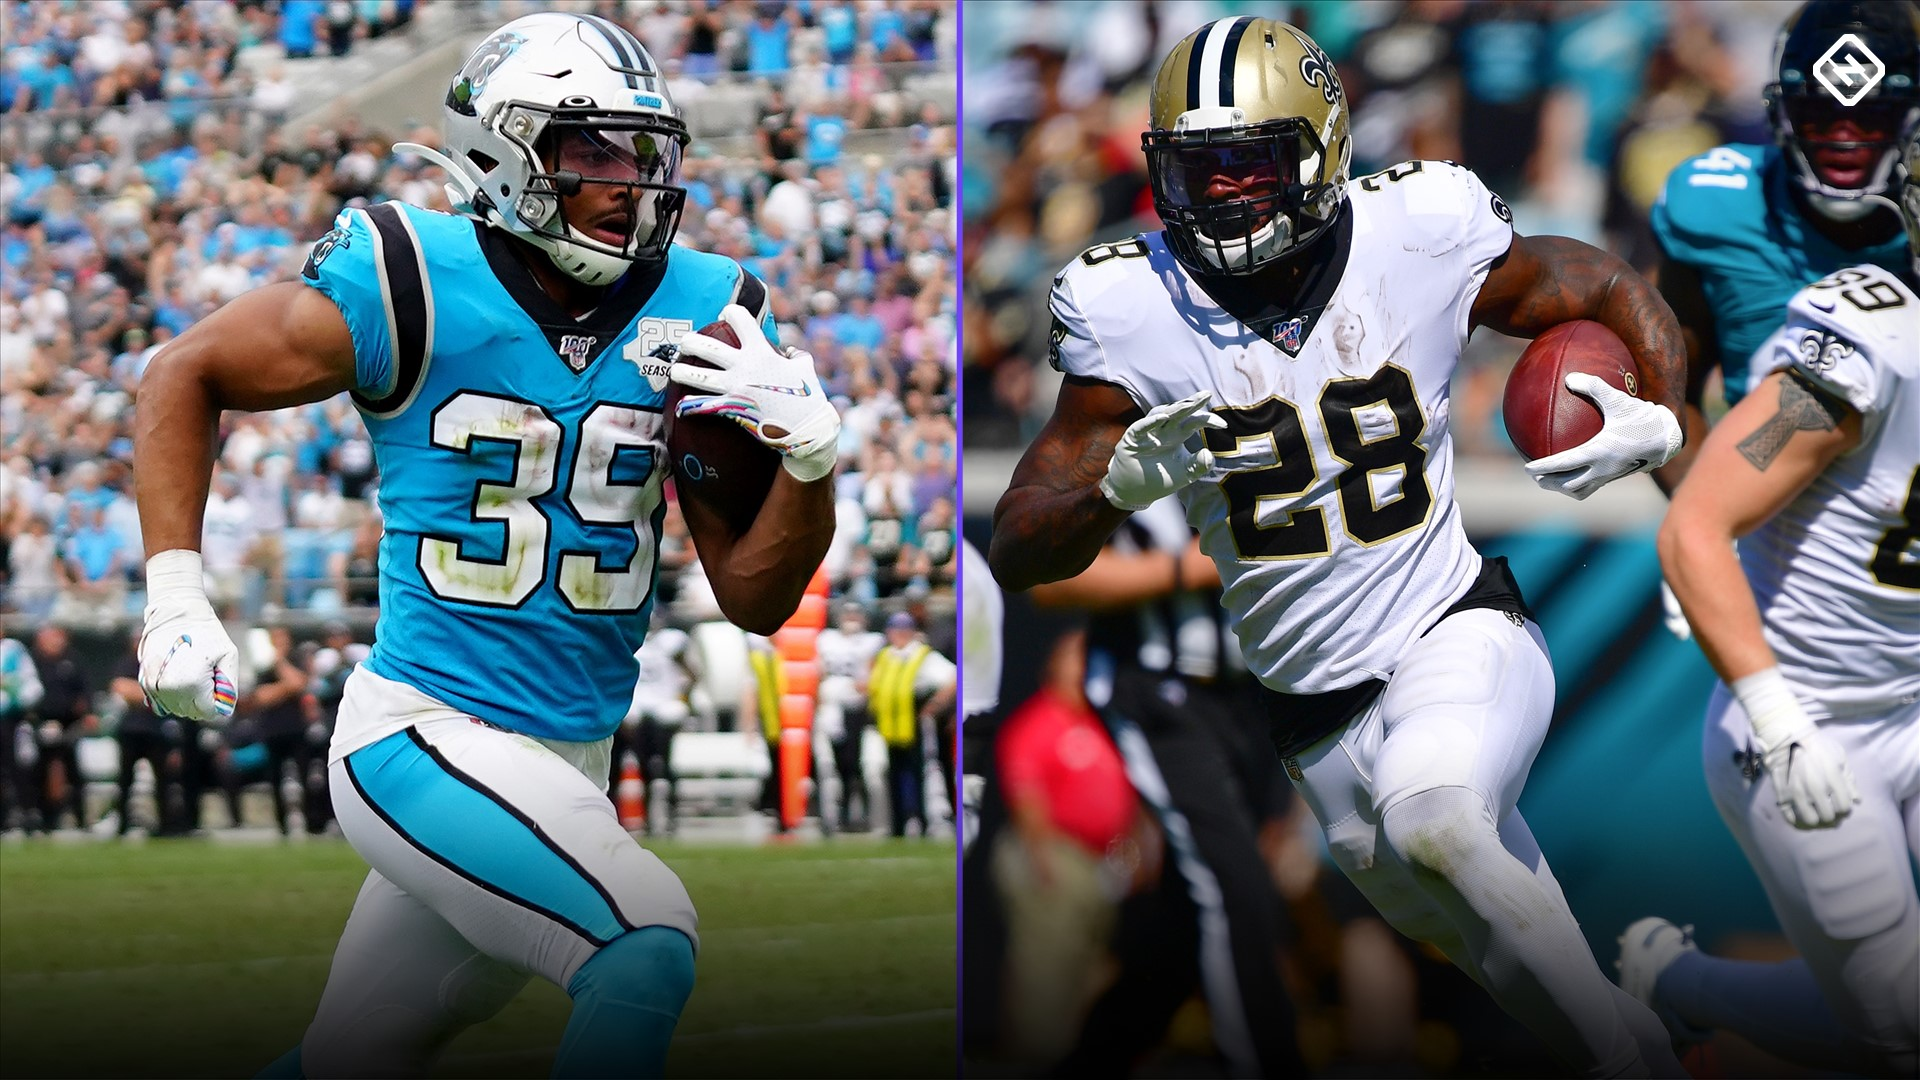 2020 Fantasy RB Handcuffs Chart: Find sleepers, backups for your top running backs